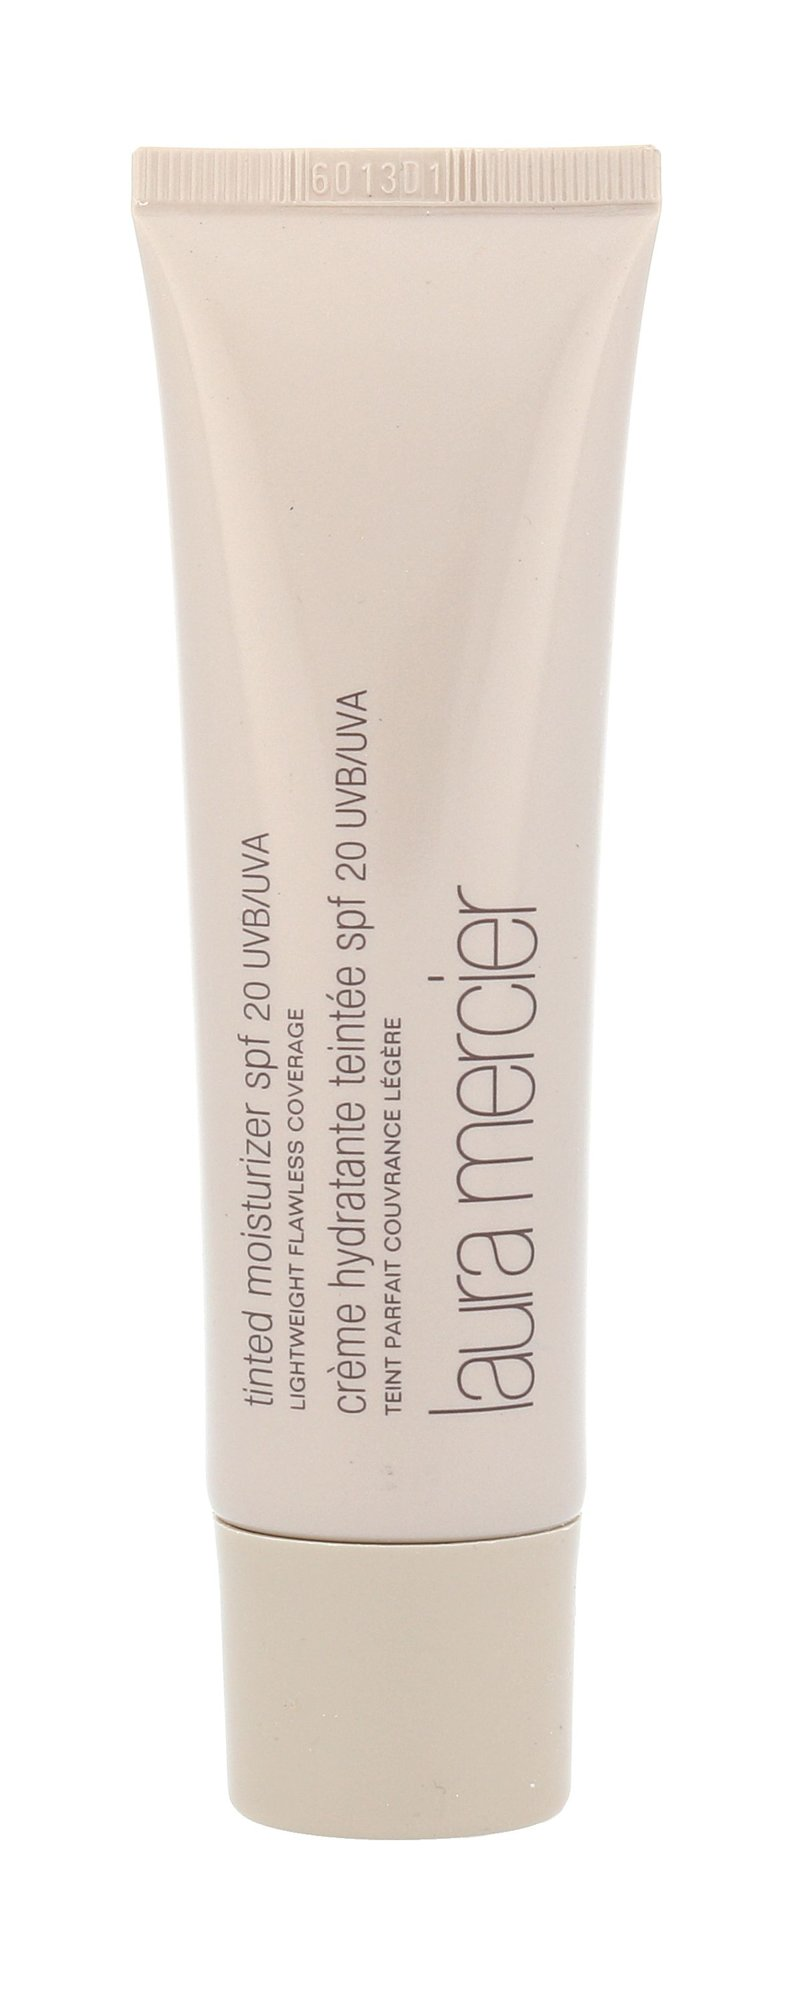 Laura Mercier Tinted Moisturizer Cosmetic 50ml Cameo